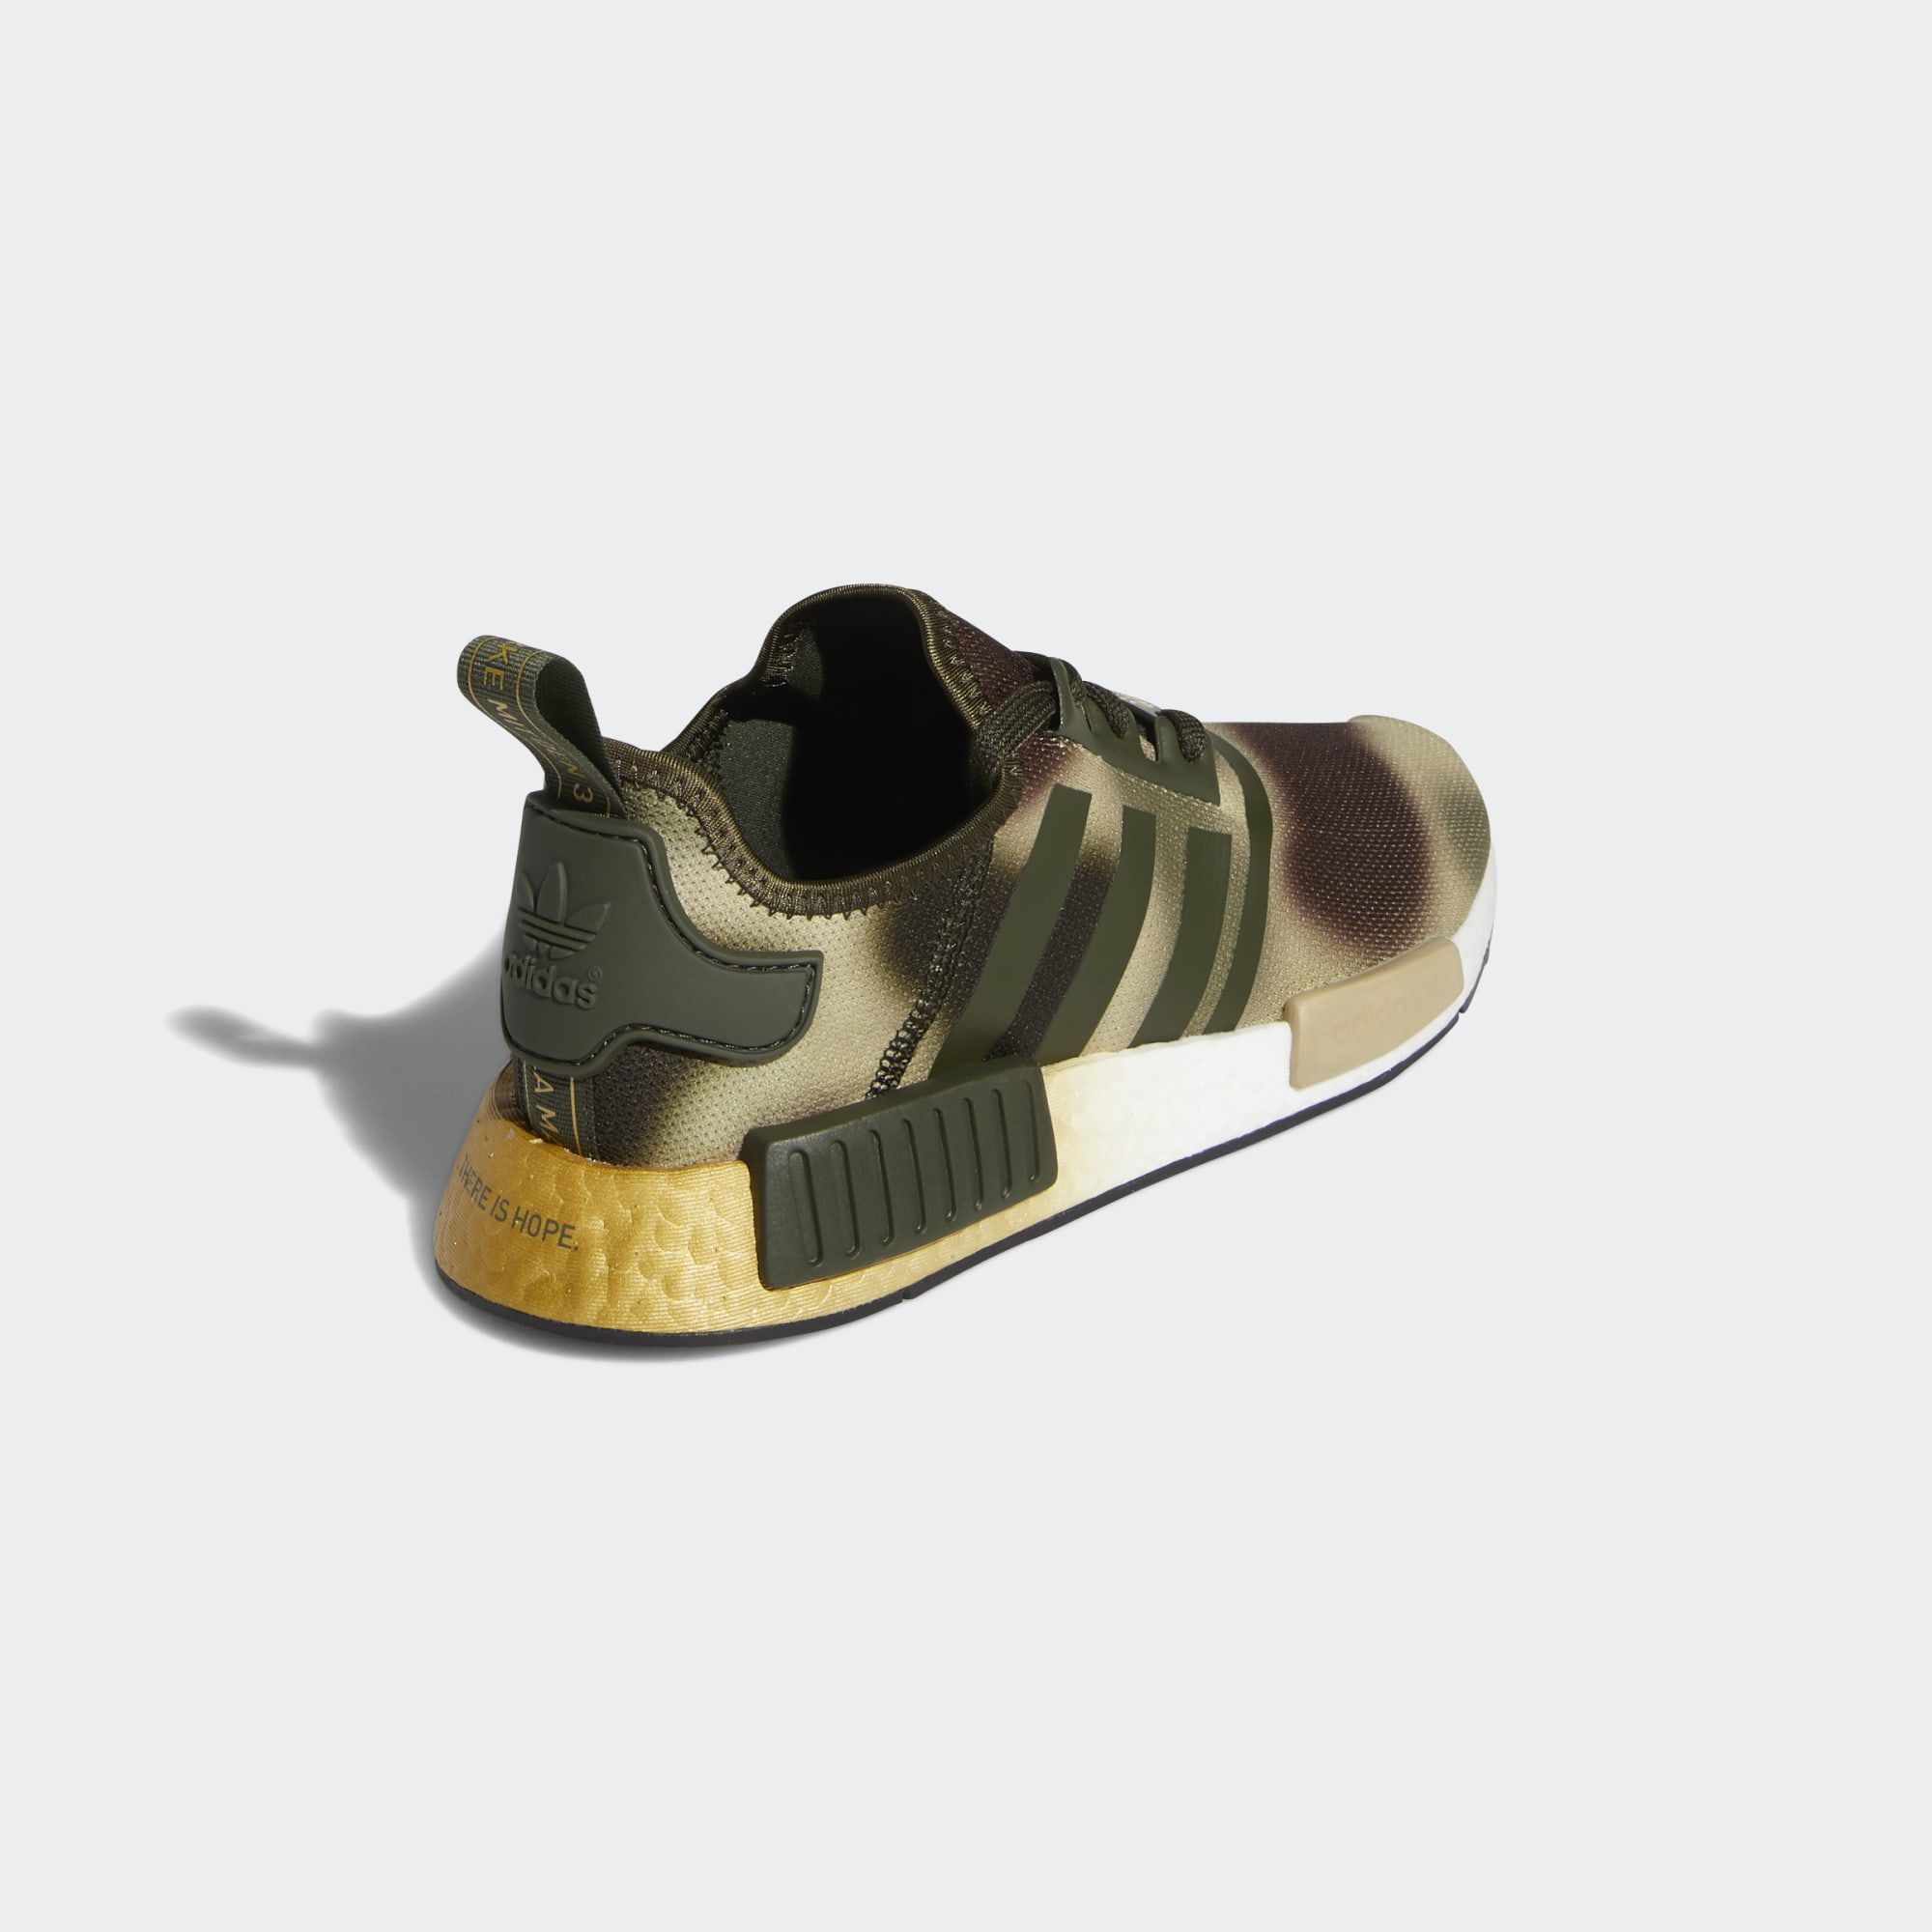 Womens NMD R1 Star Wars night cargo